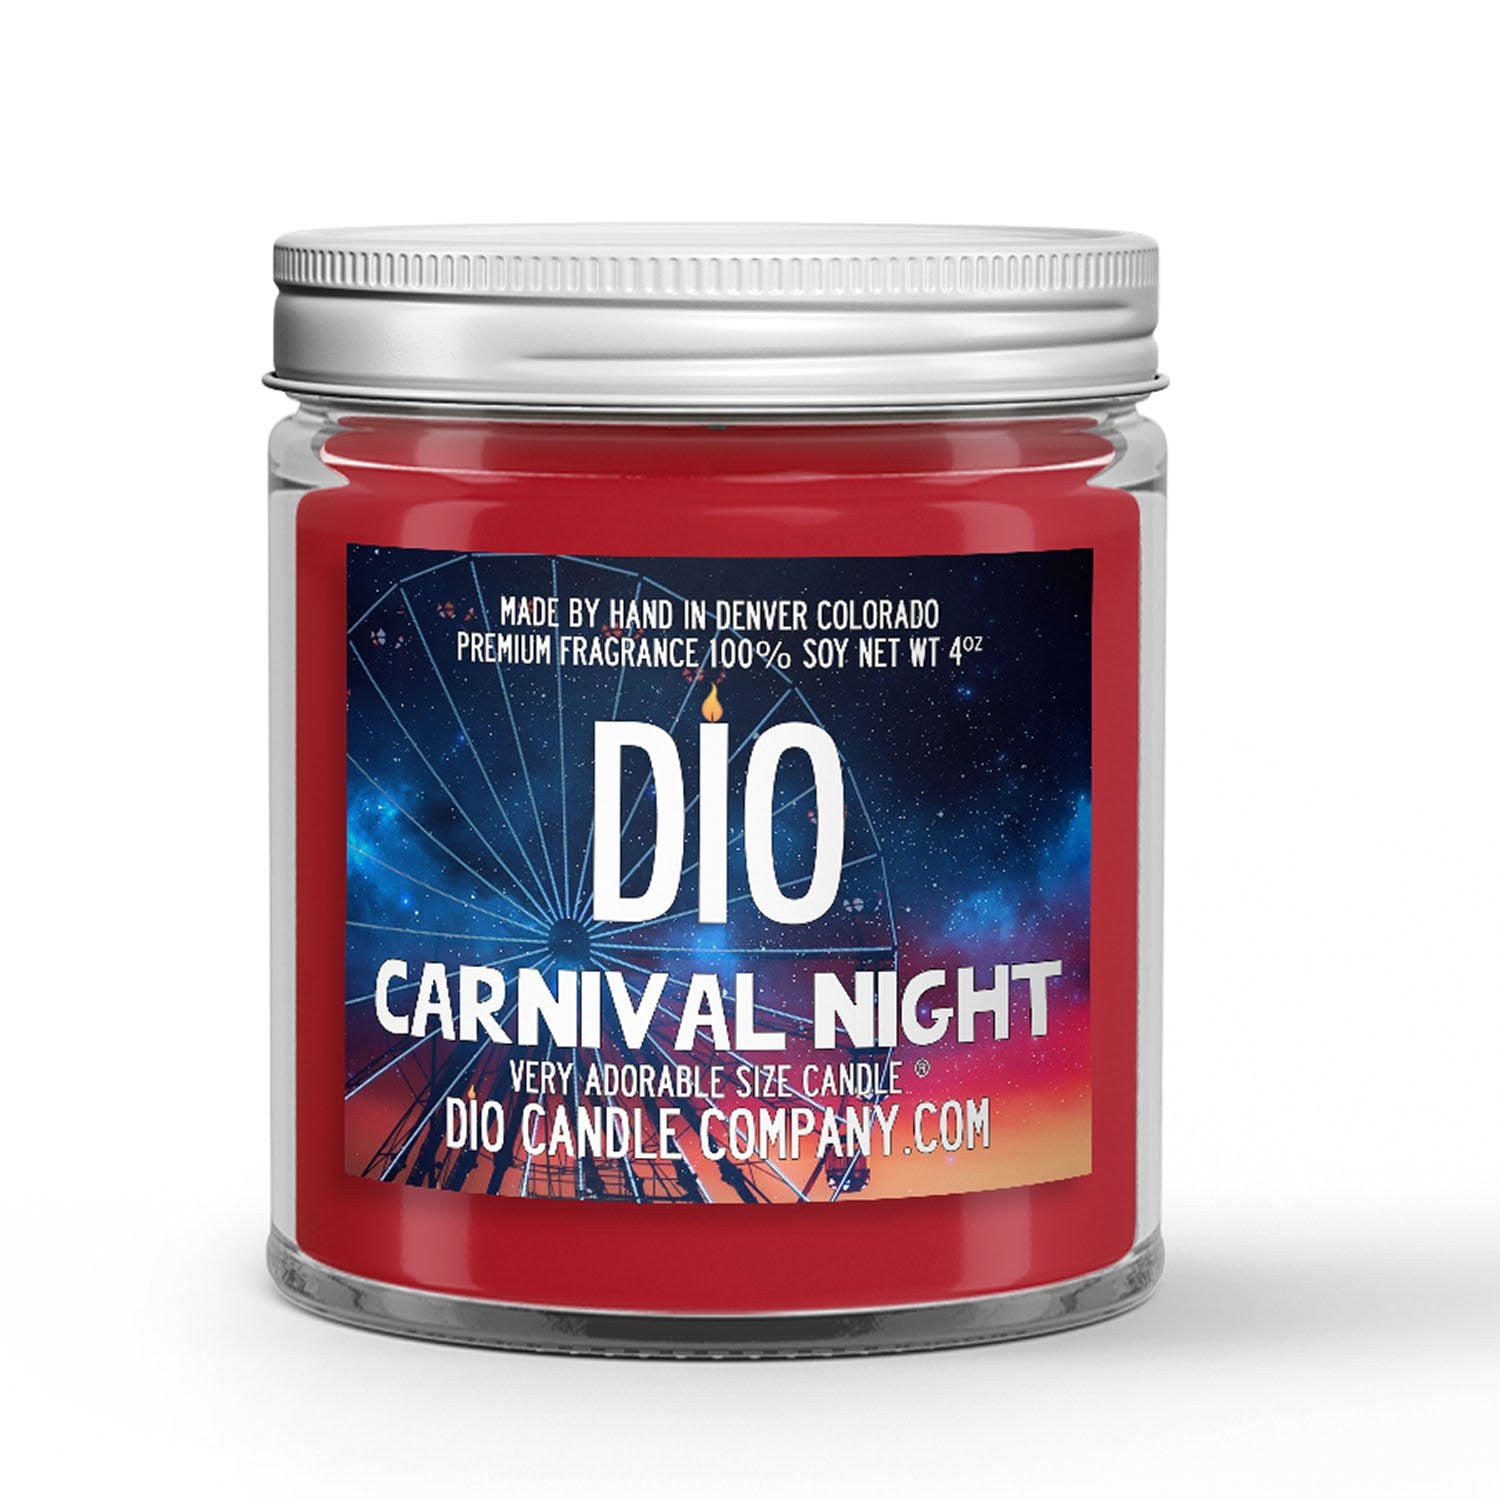 Carnival Night Candle Cotton Candy - Fireworks Scented - Dio Candle Company